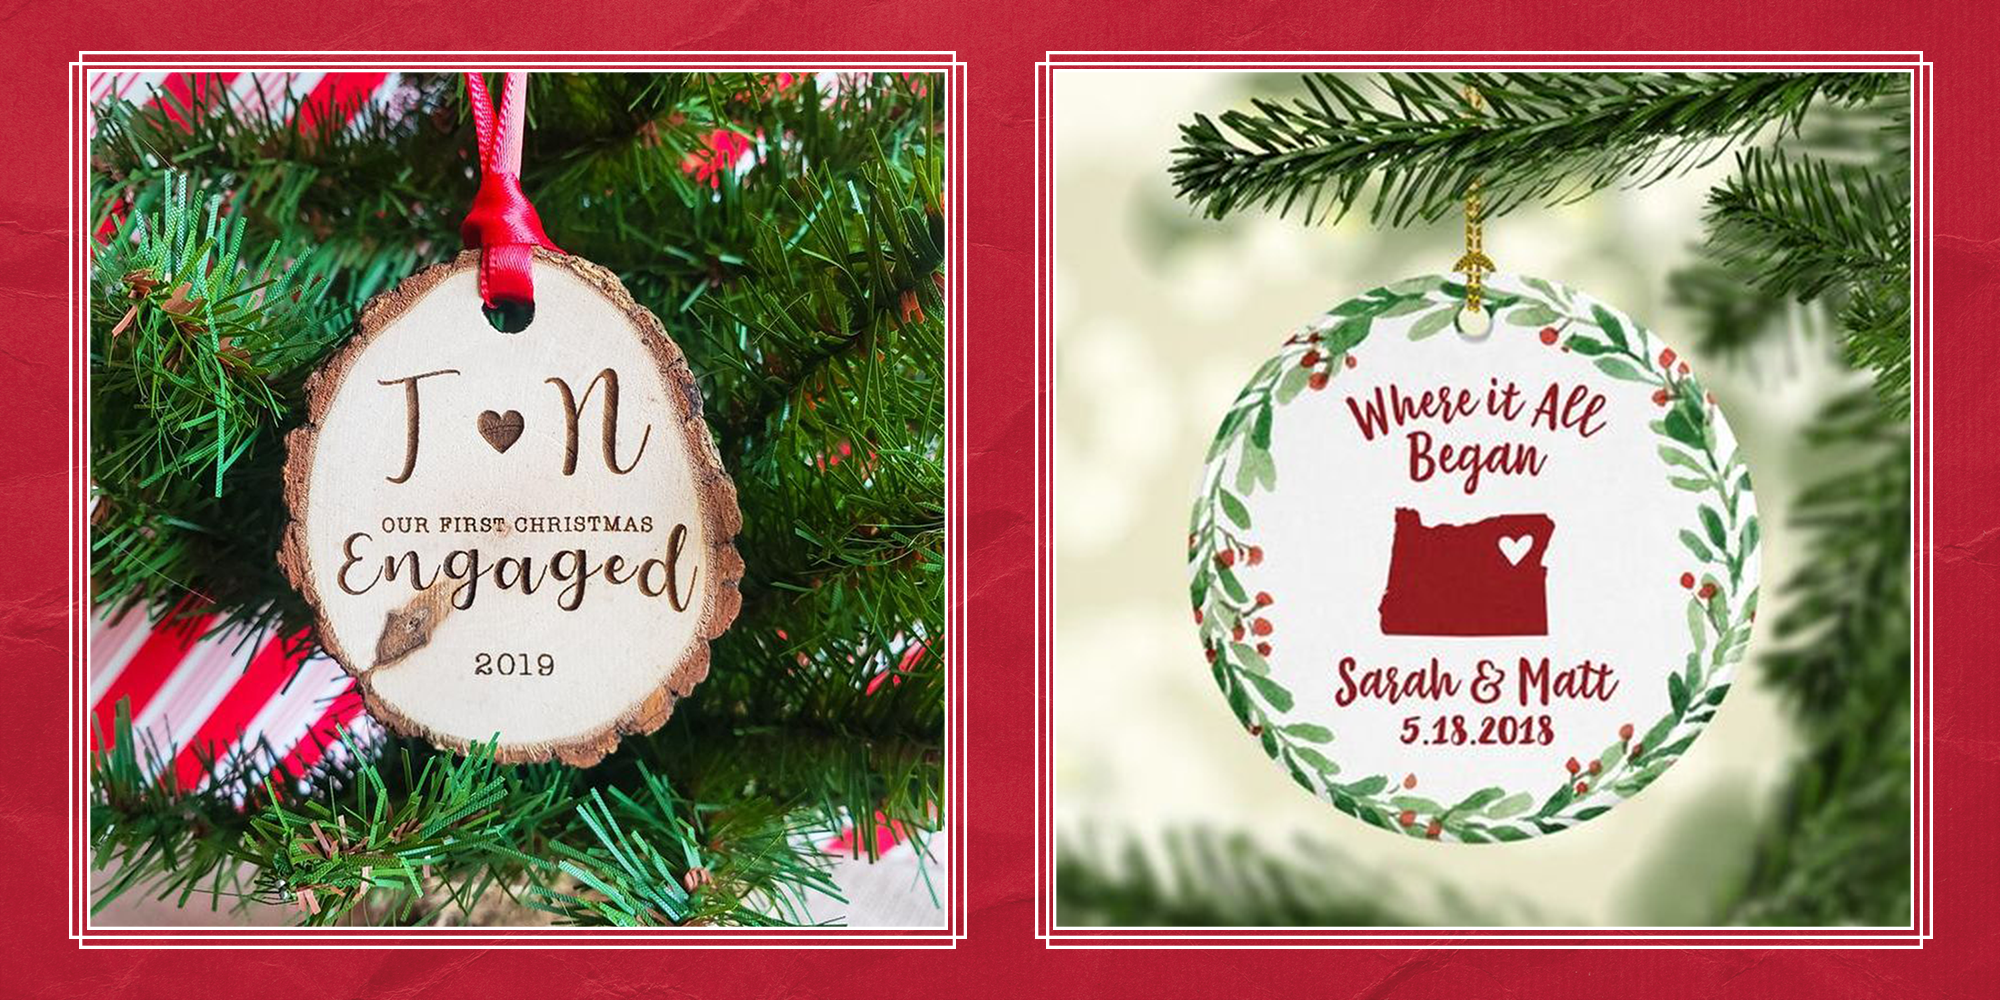 25 Best Engagement Ornaments Personalized Ornaments For First Engaged Christmas